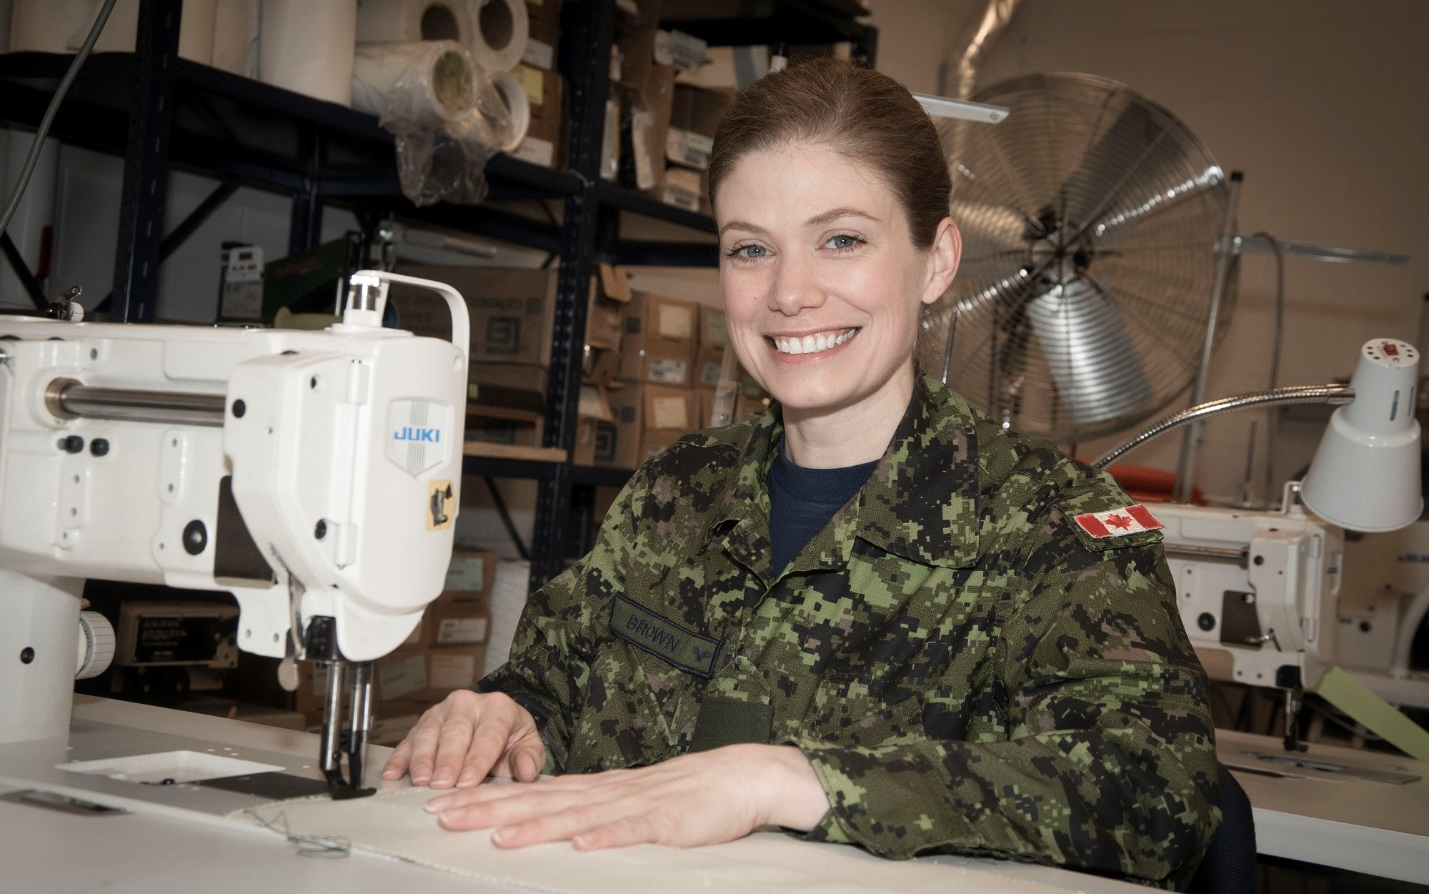 A smiling woman wearing a disruptive pattern uniform sitting at a table works with a sewing machine.